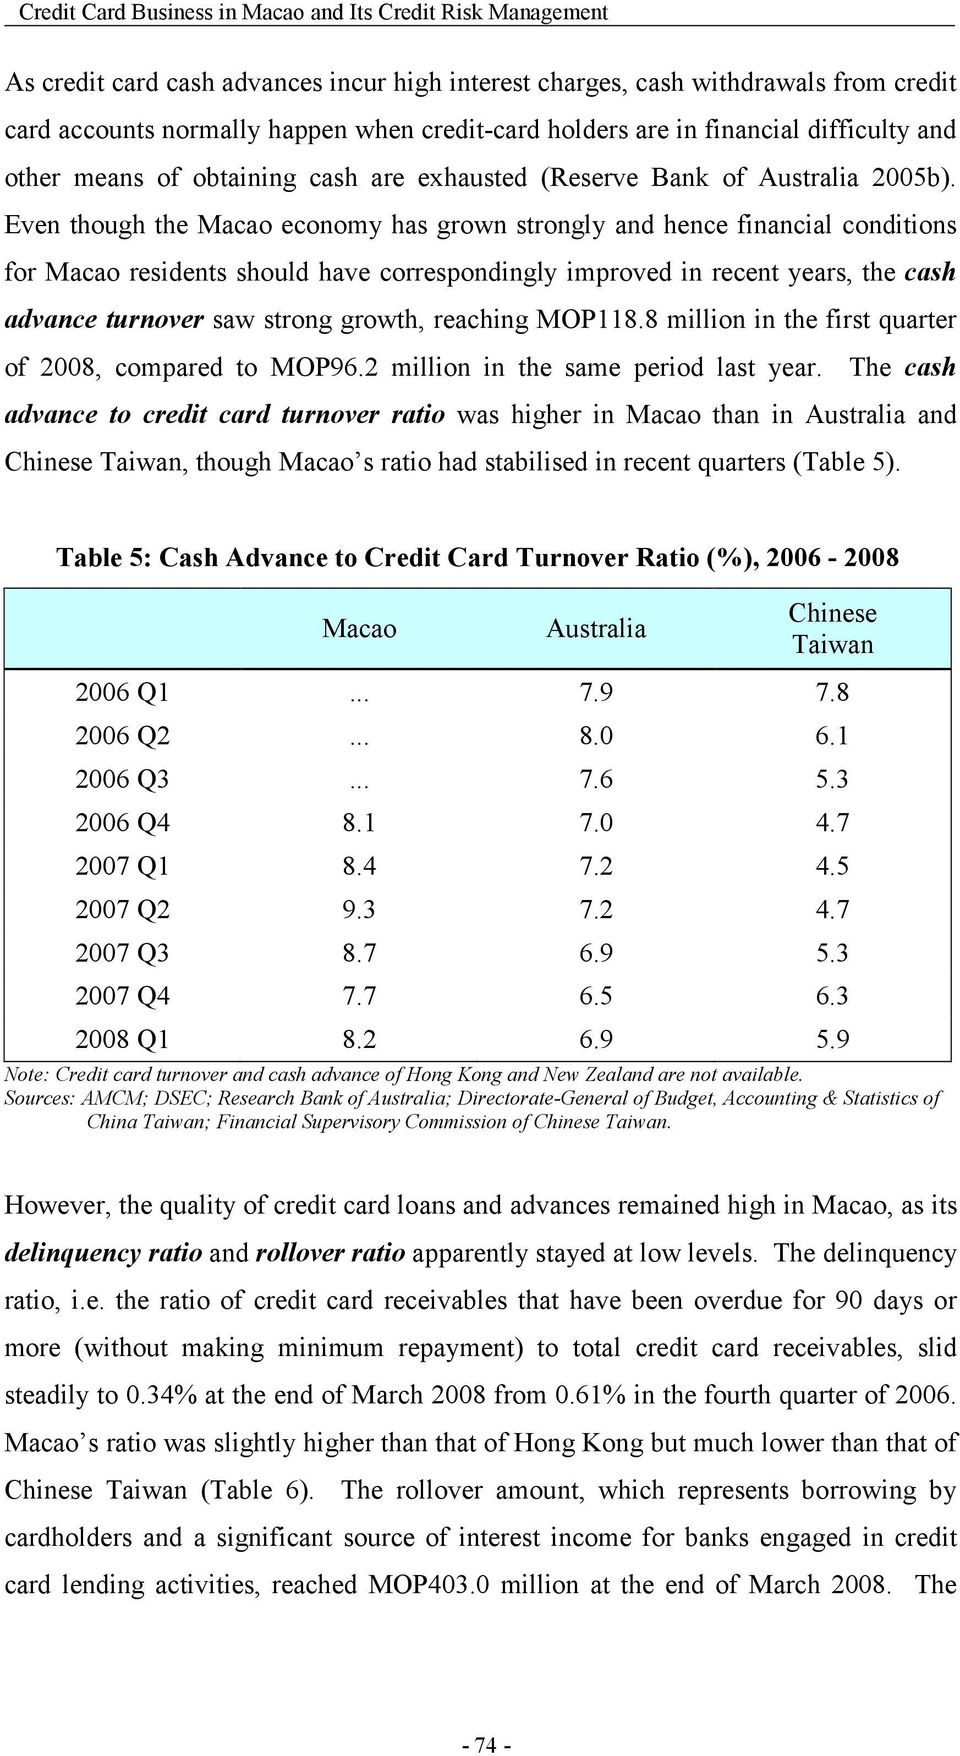 Even though the Macao economy has grown strongly and hence financial conditions for Macao residents should have correspondingly improved in recent years, the cash advance turnover saw strong growth,